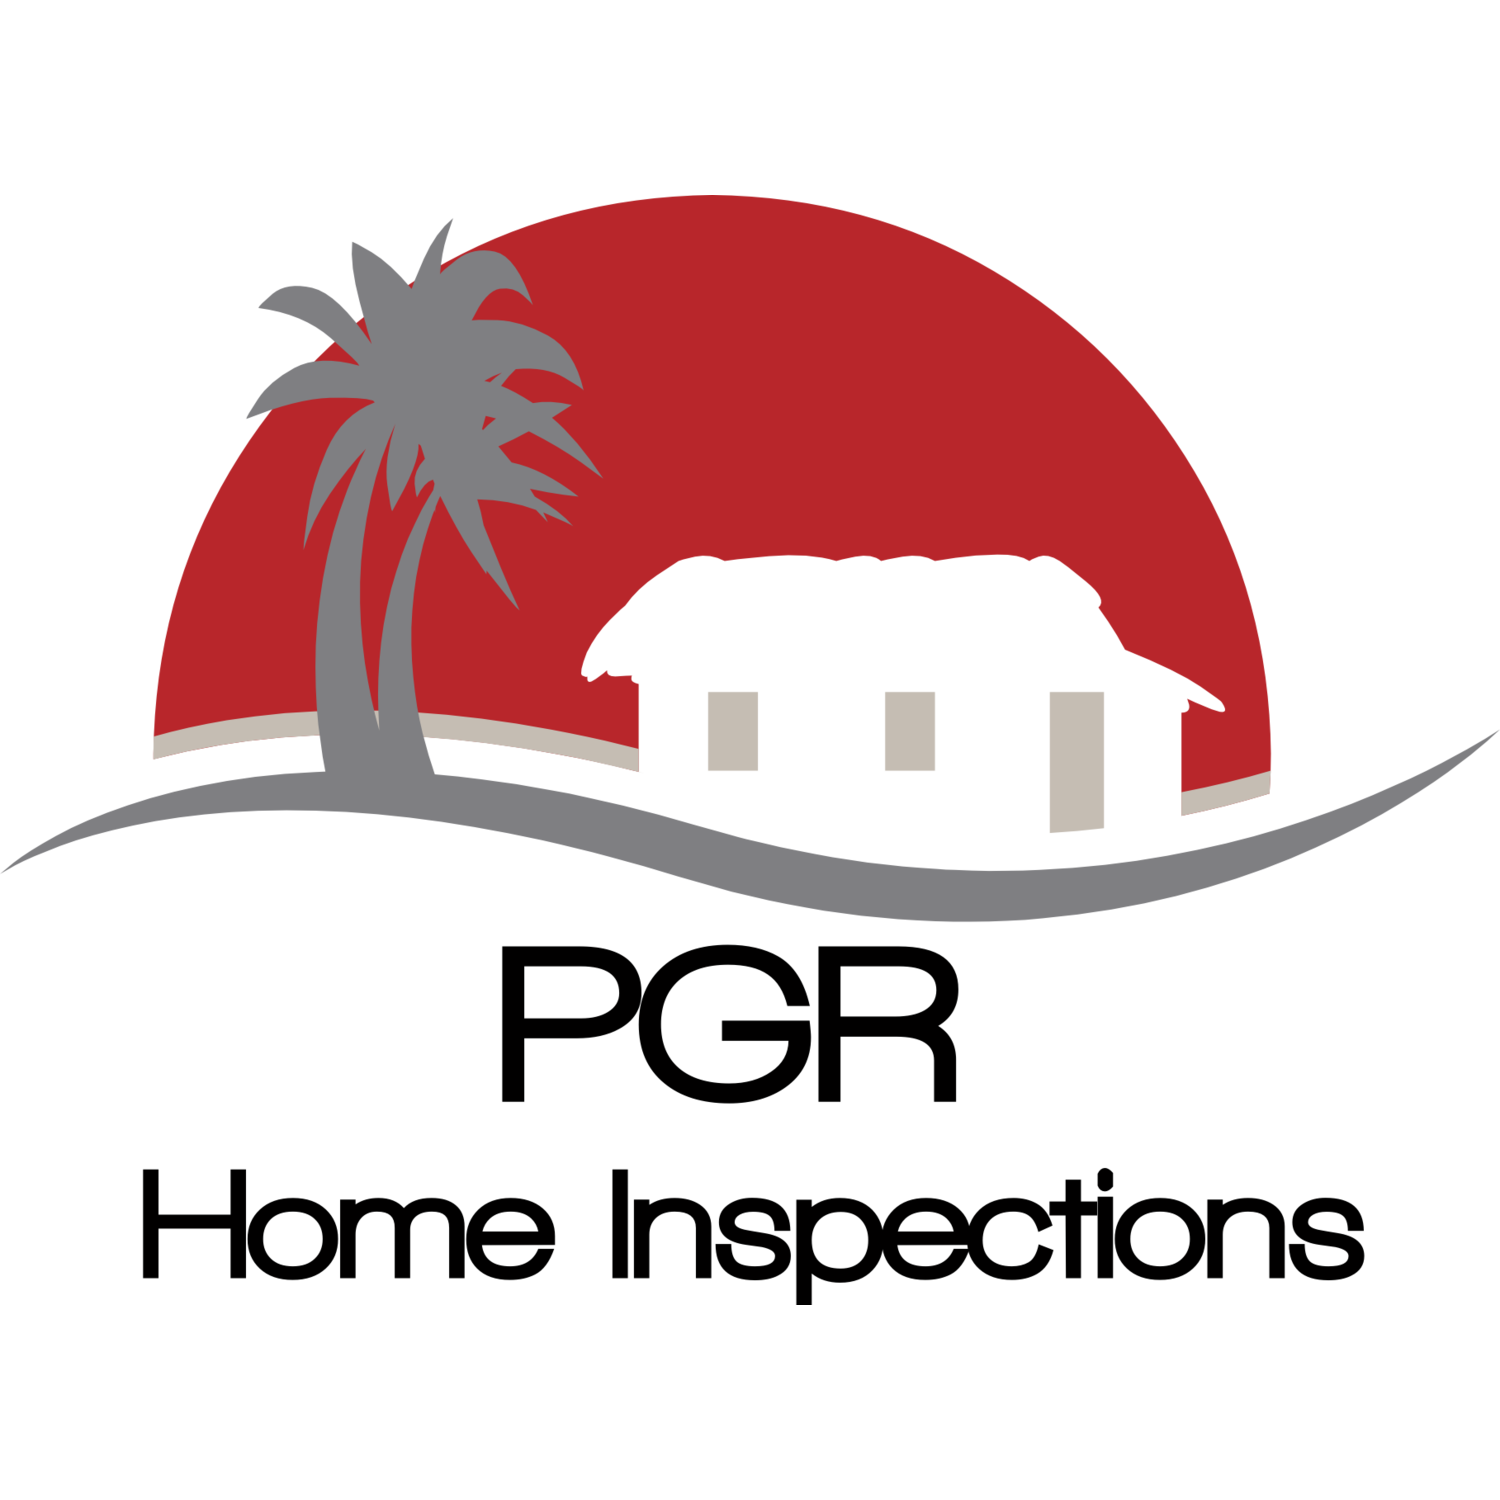 PGR Home Inspections